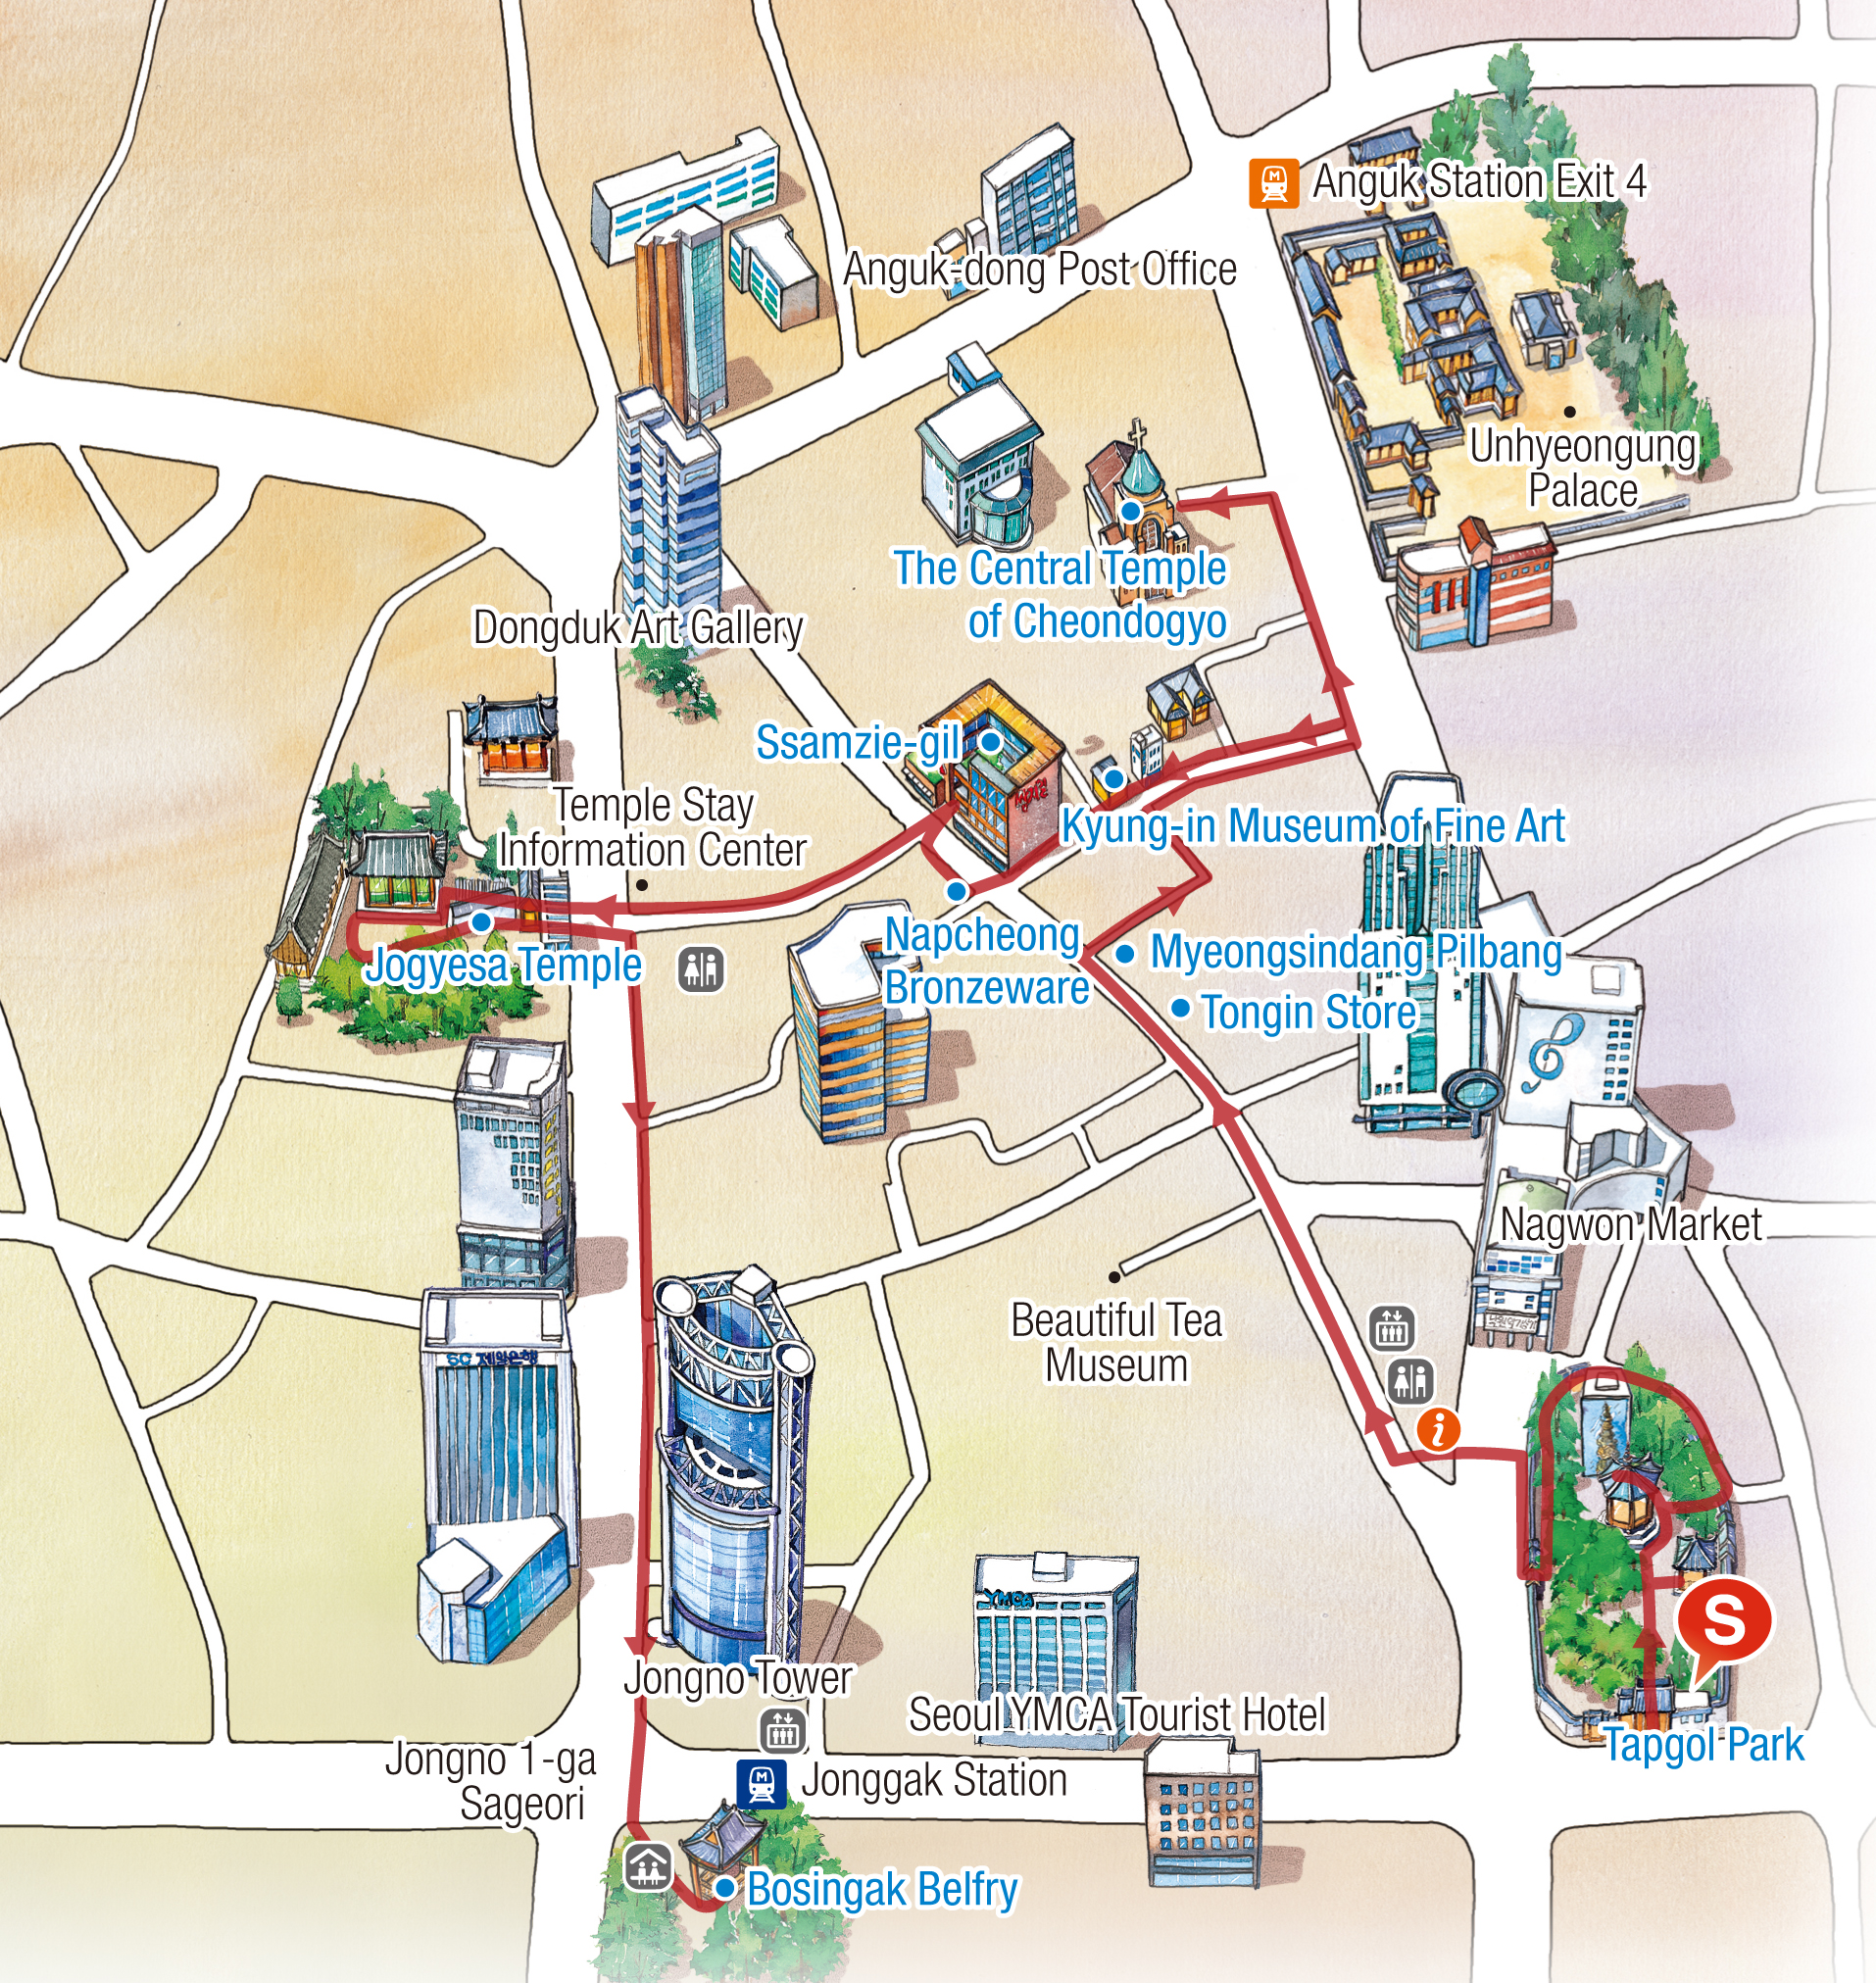 Map of Walking Tour Route Map : Tapgol Park - Tong-in Store - Myungsindang pilbang - The Central Temple of Cheondogyo - Kyungin Museum of Fine Art Napcheong Bronzeware -Ssamzie-gil - Jogyesa(Temple) - Bosingak